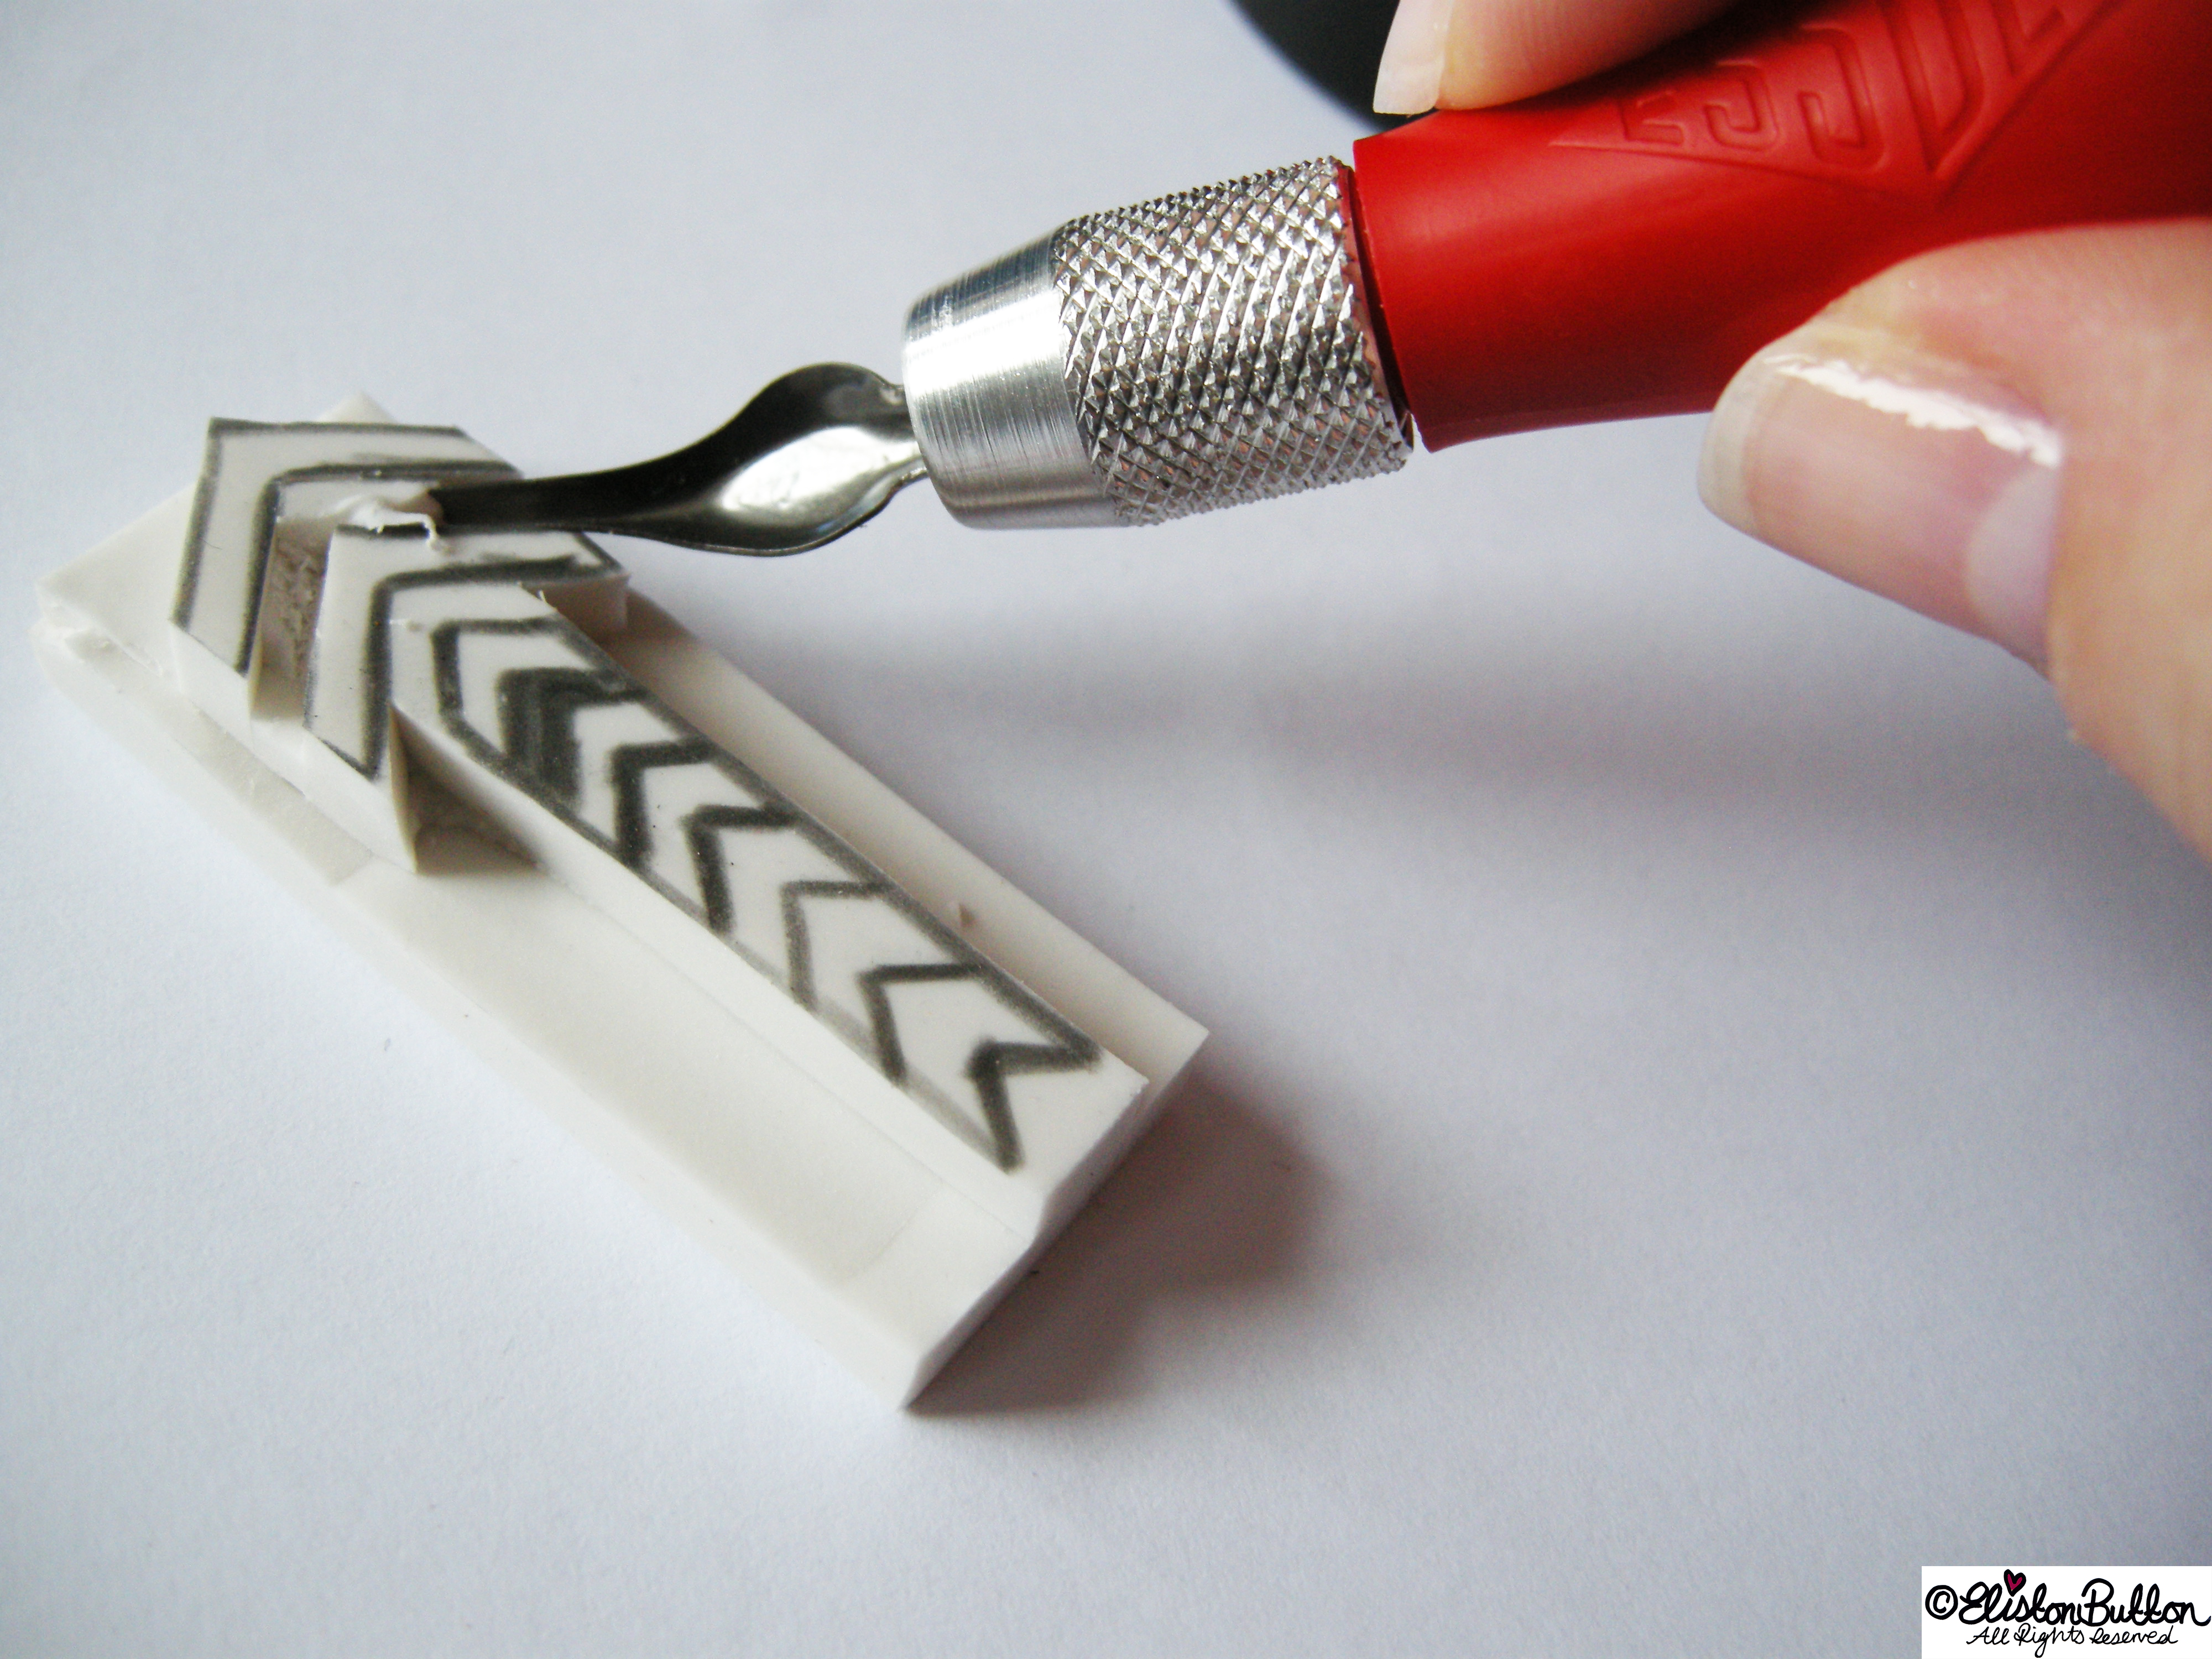 Hand Carving a Chevron Arrow Stamp - Cutting the Rubber - Workspace Wednesday - Hello Handmade Stamps at www.elistonbutton.com - Eliston Button - That Crafty Kid – Art, Design, Craft & Adventure.